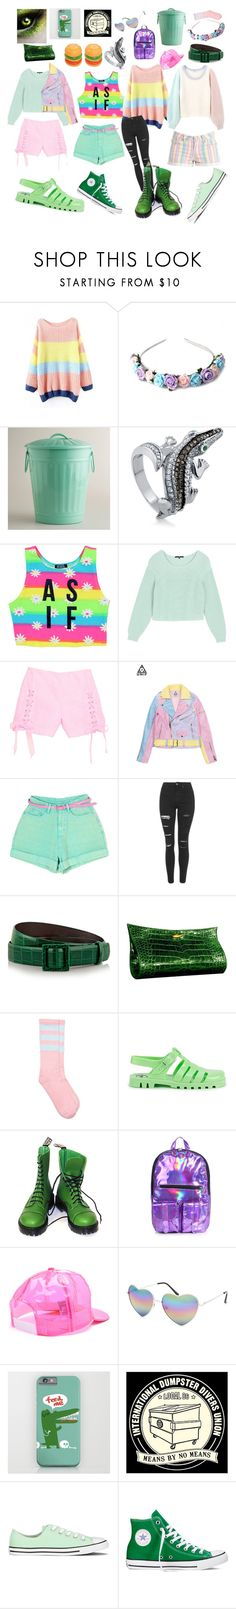 """Undertale: Bratty"" by notasupervillian ❤ liked on Polyvore featuring Zara Taylor, Cost Plus World Market, BERRICLE, Dimepiece, TIBI, Topshop, Oscar de la Renta, Lautrec, JuJu and Vegetarian Shoes"